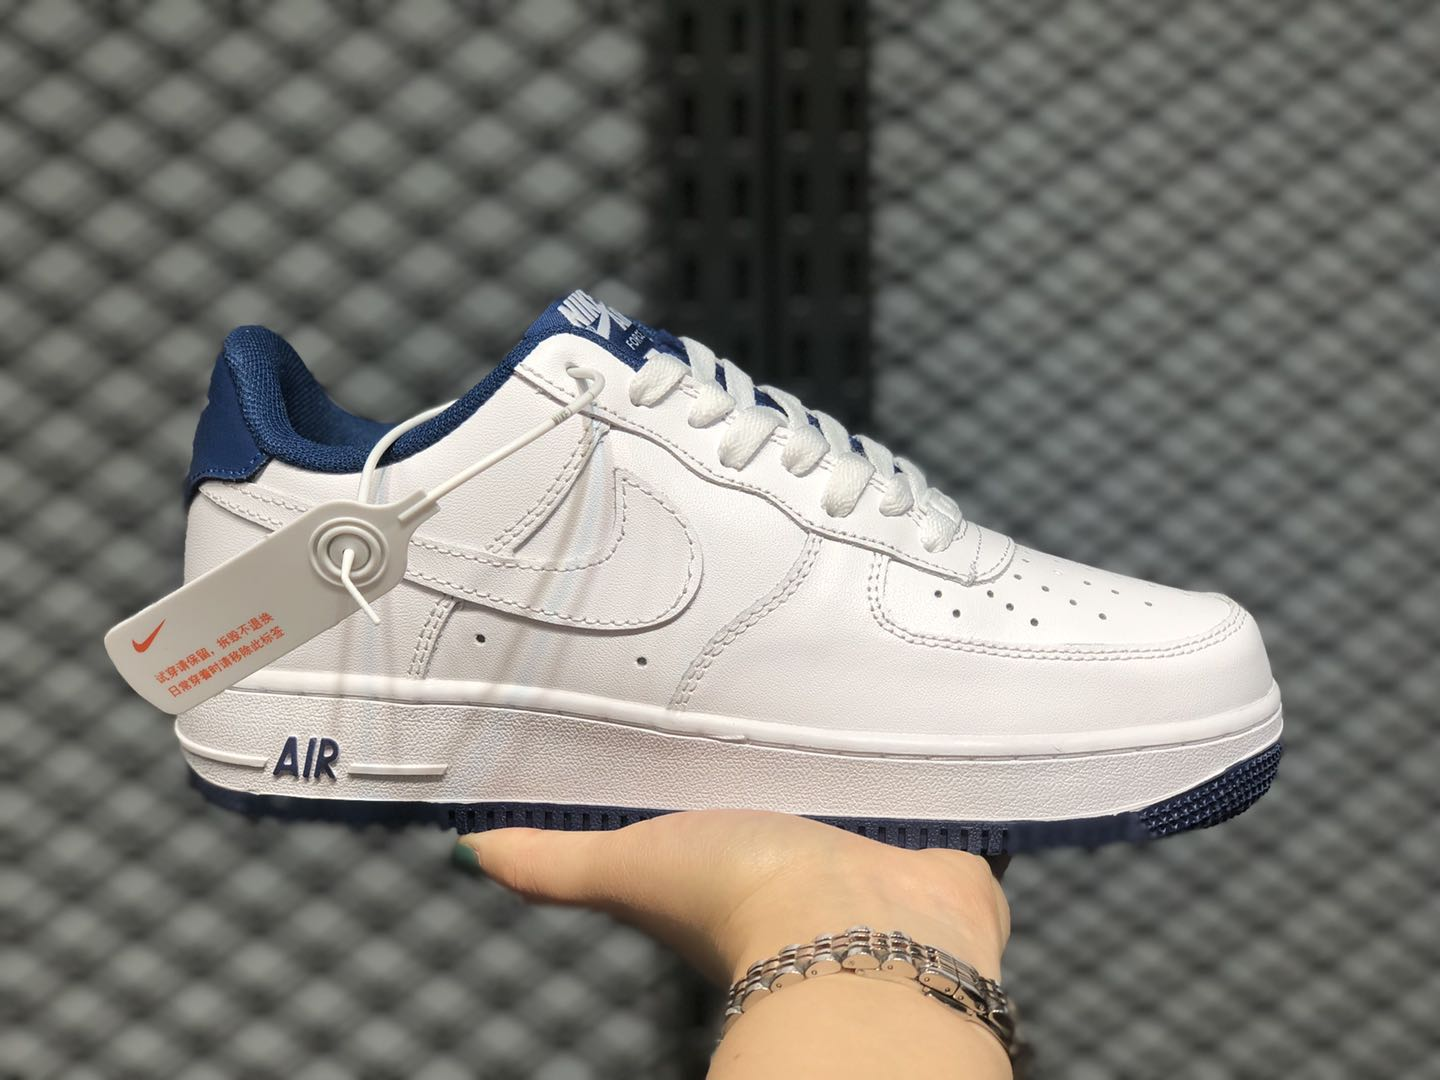 Discount Nike Air Force 1'07 Low Cloud White/Navy Blue CD0884-102